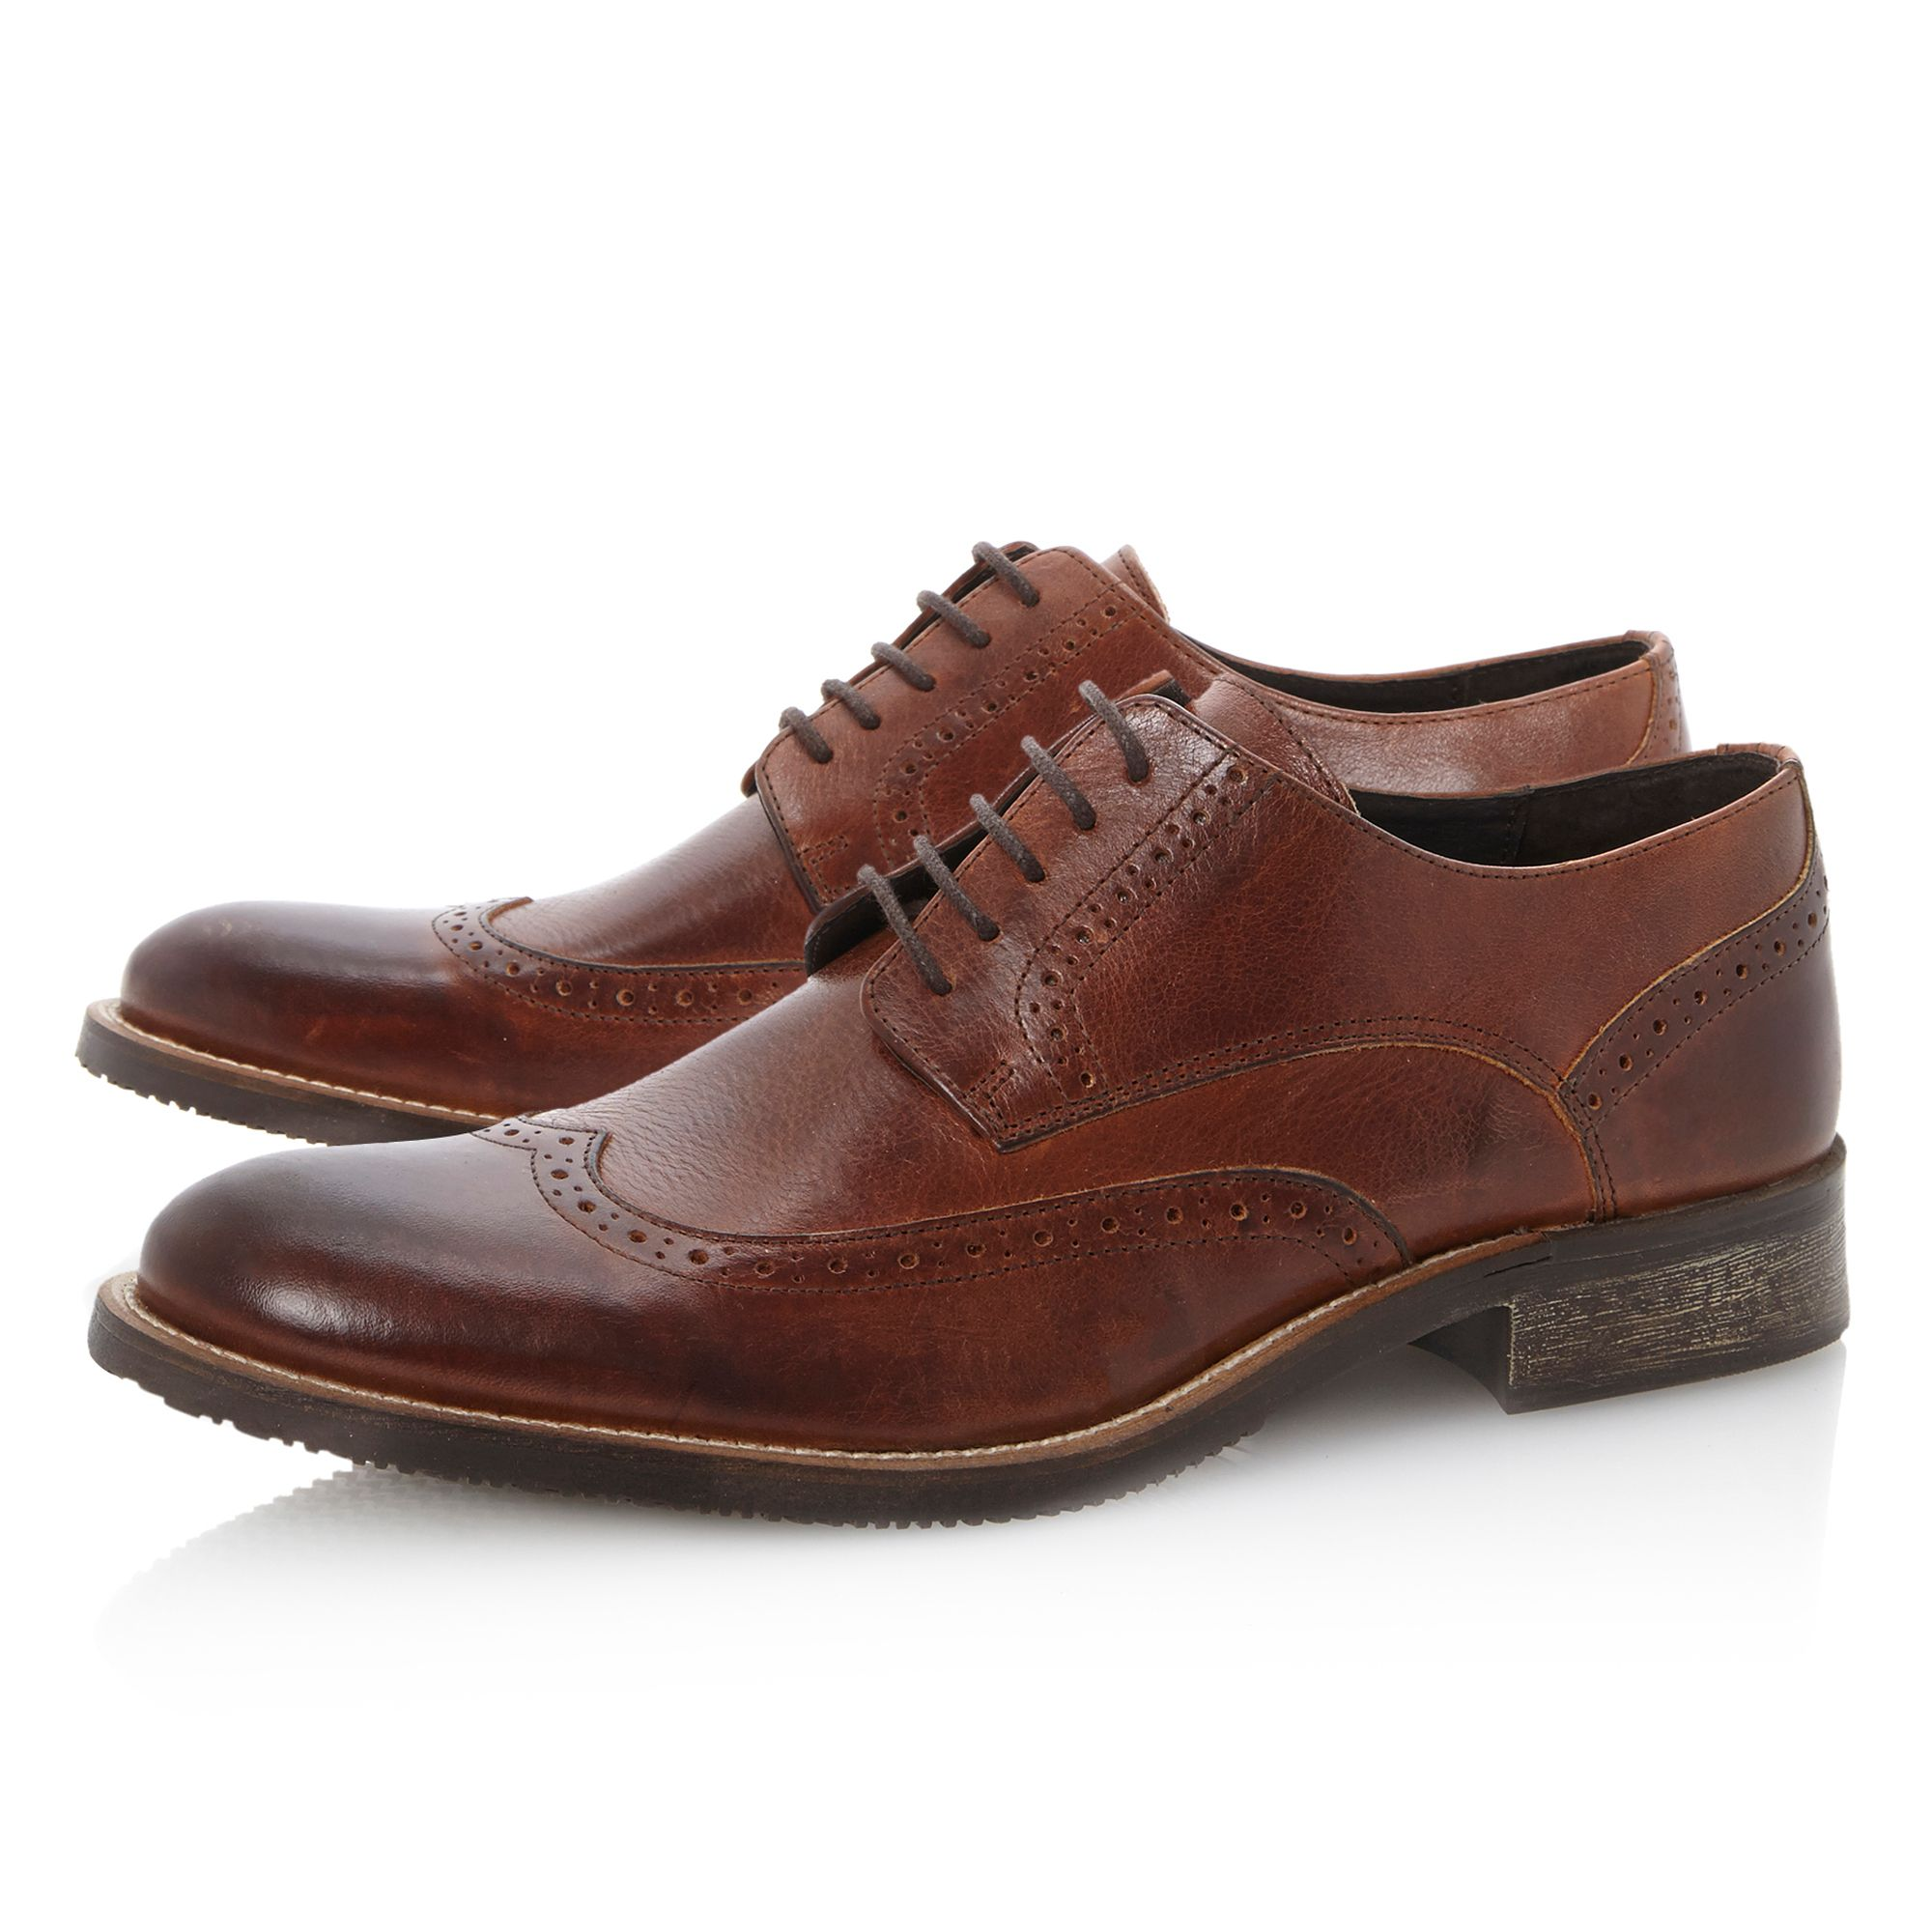 Bellair wingtip brogue gibson shoes